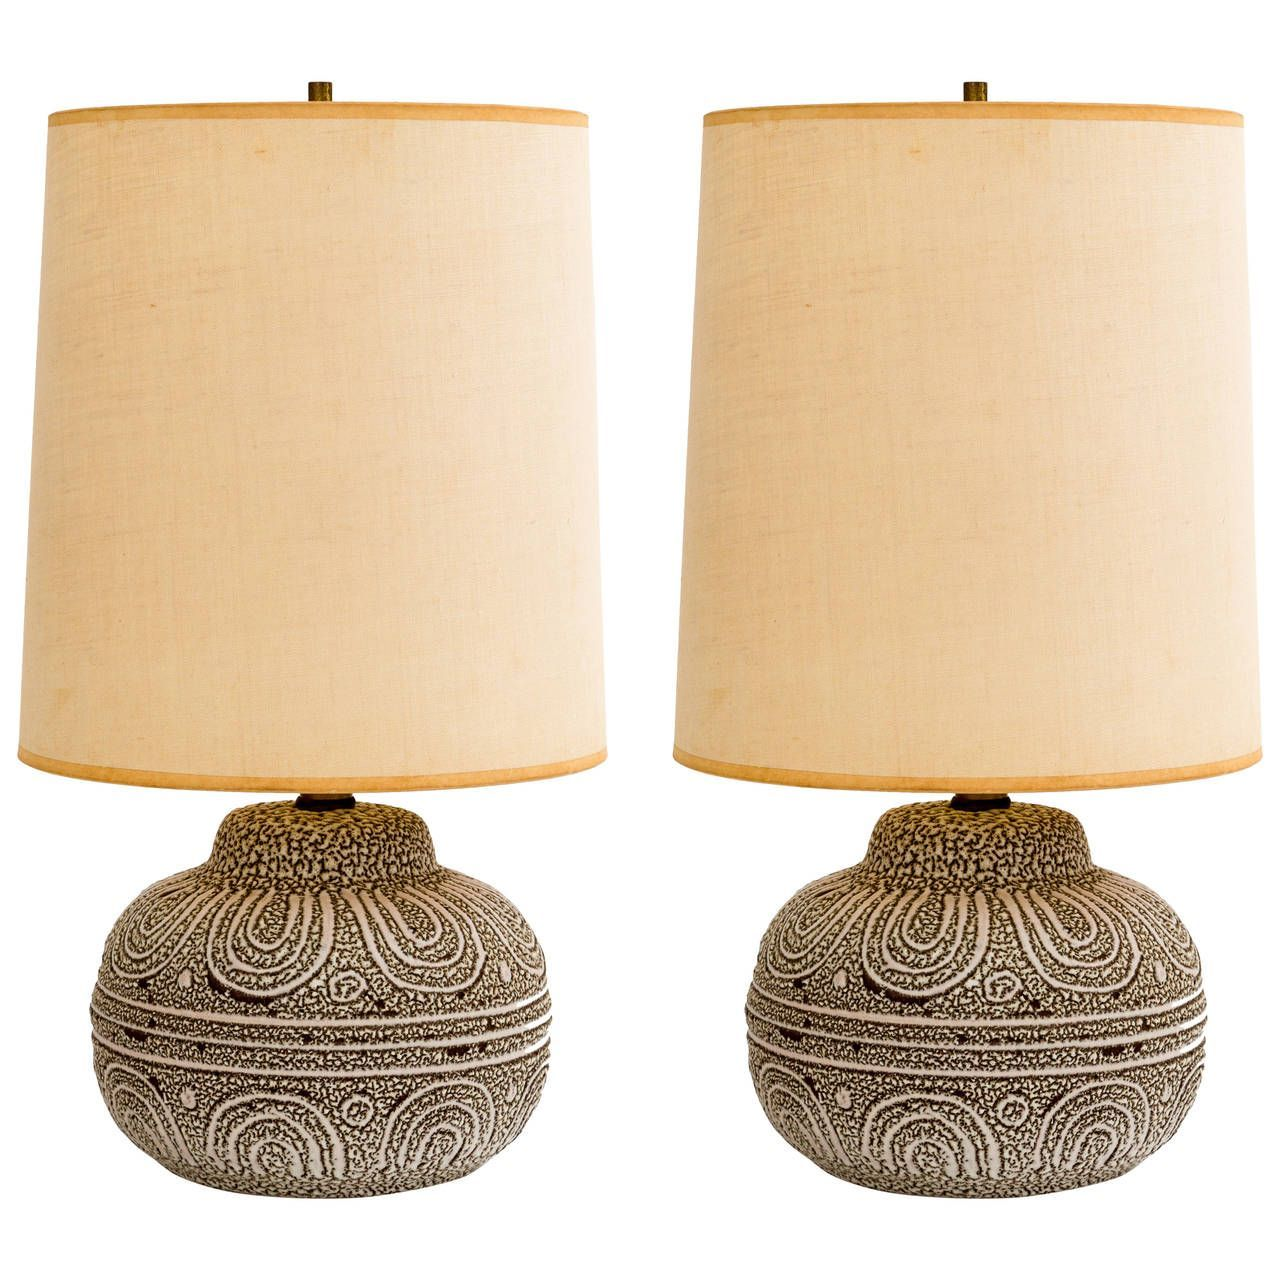 Pin By Gary Thompson On Scandinave Lamps Decorative Floor Lamps